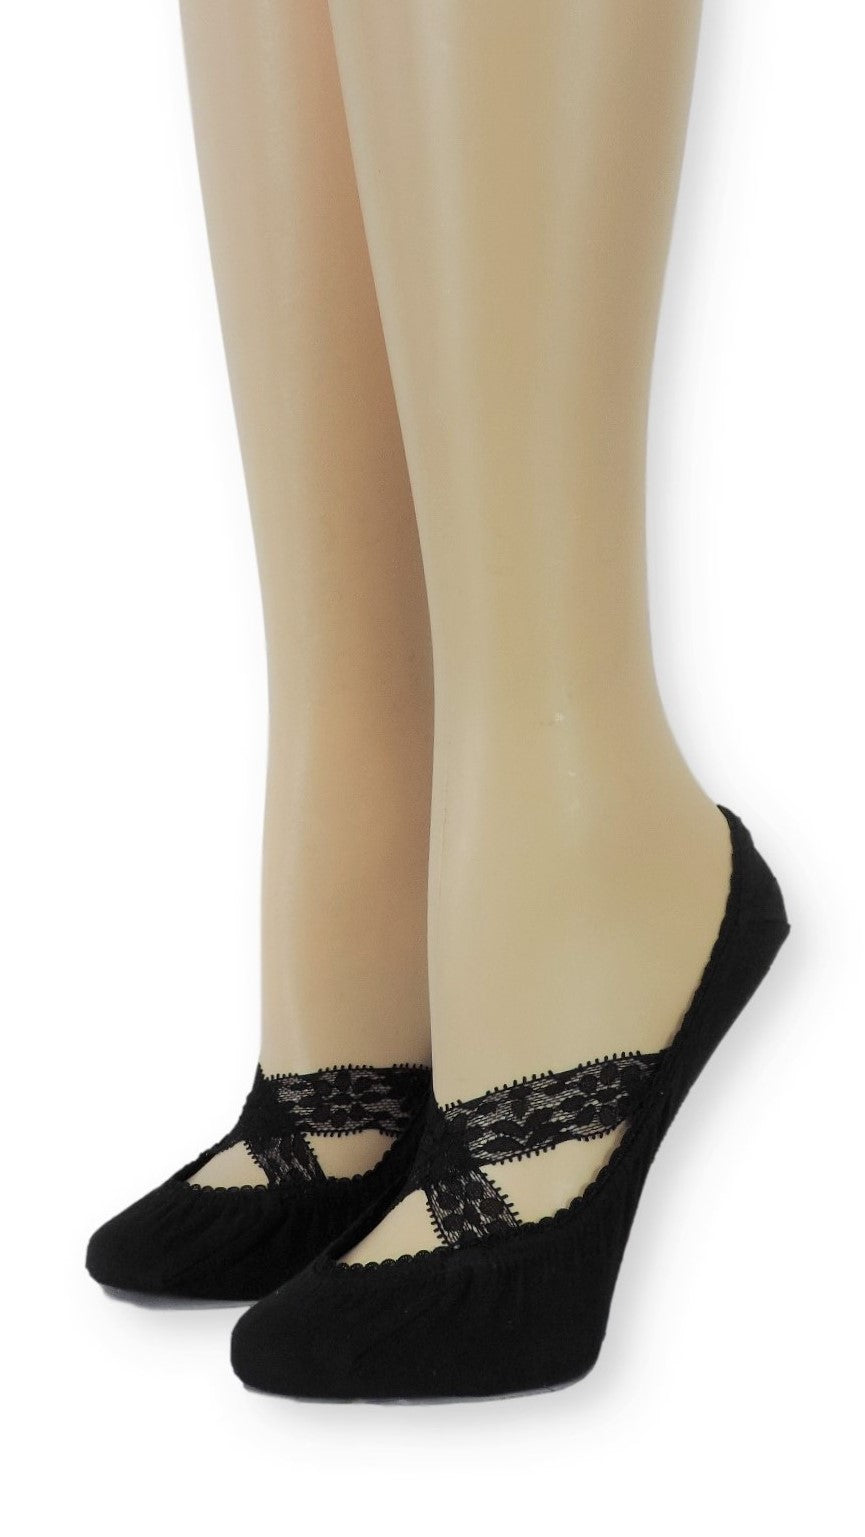 Oxy Ankle Mesh Socks with Crossed Lace